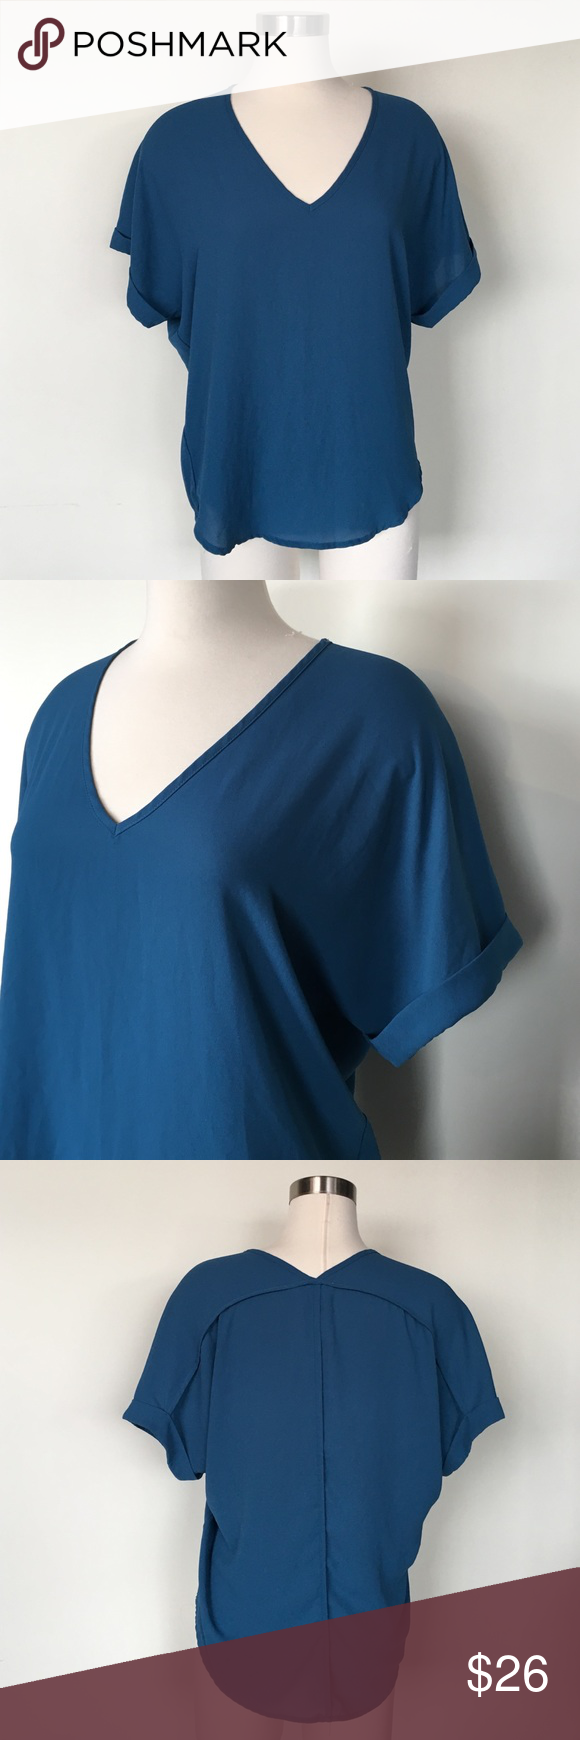 Nordstrom Drop Shoulder Blouse Lightweight top by Lush. GUC. Nordstrom Tops